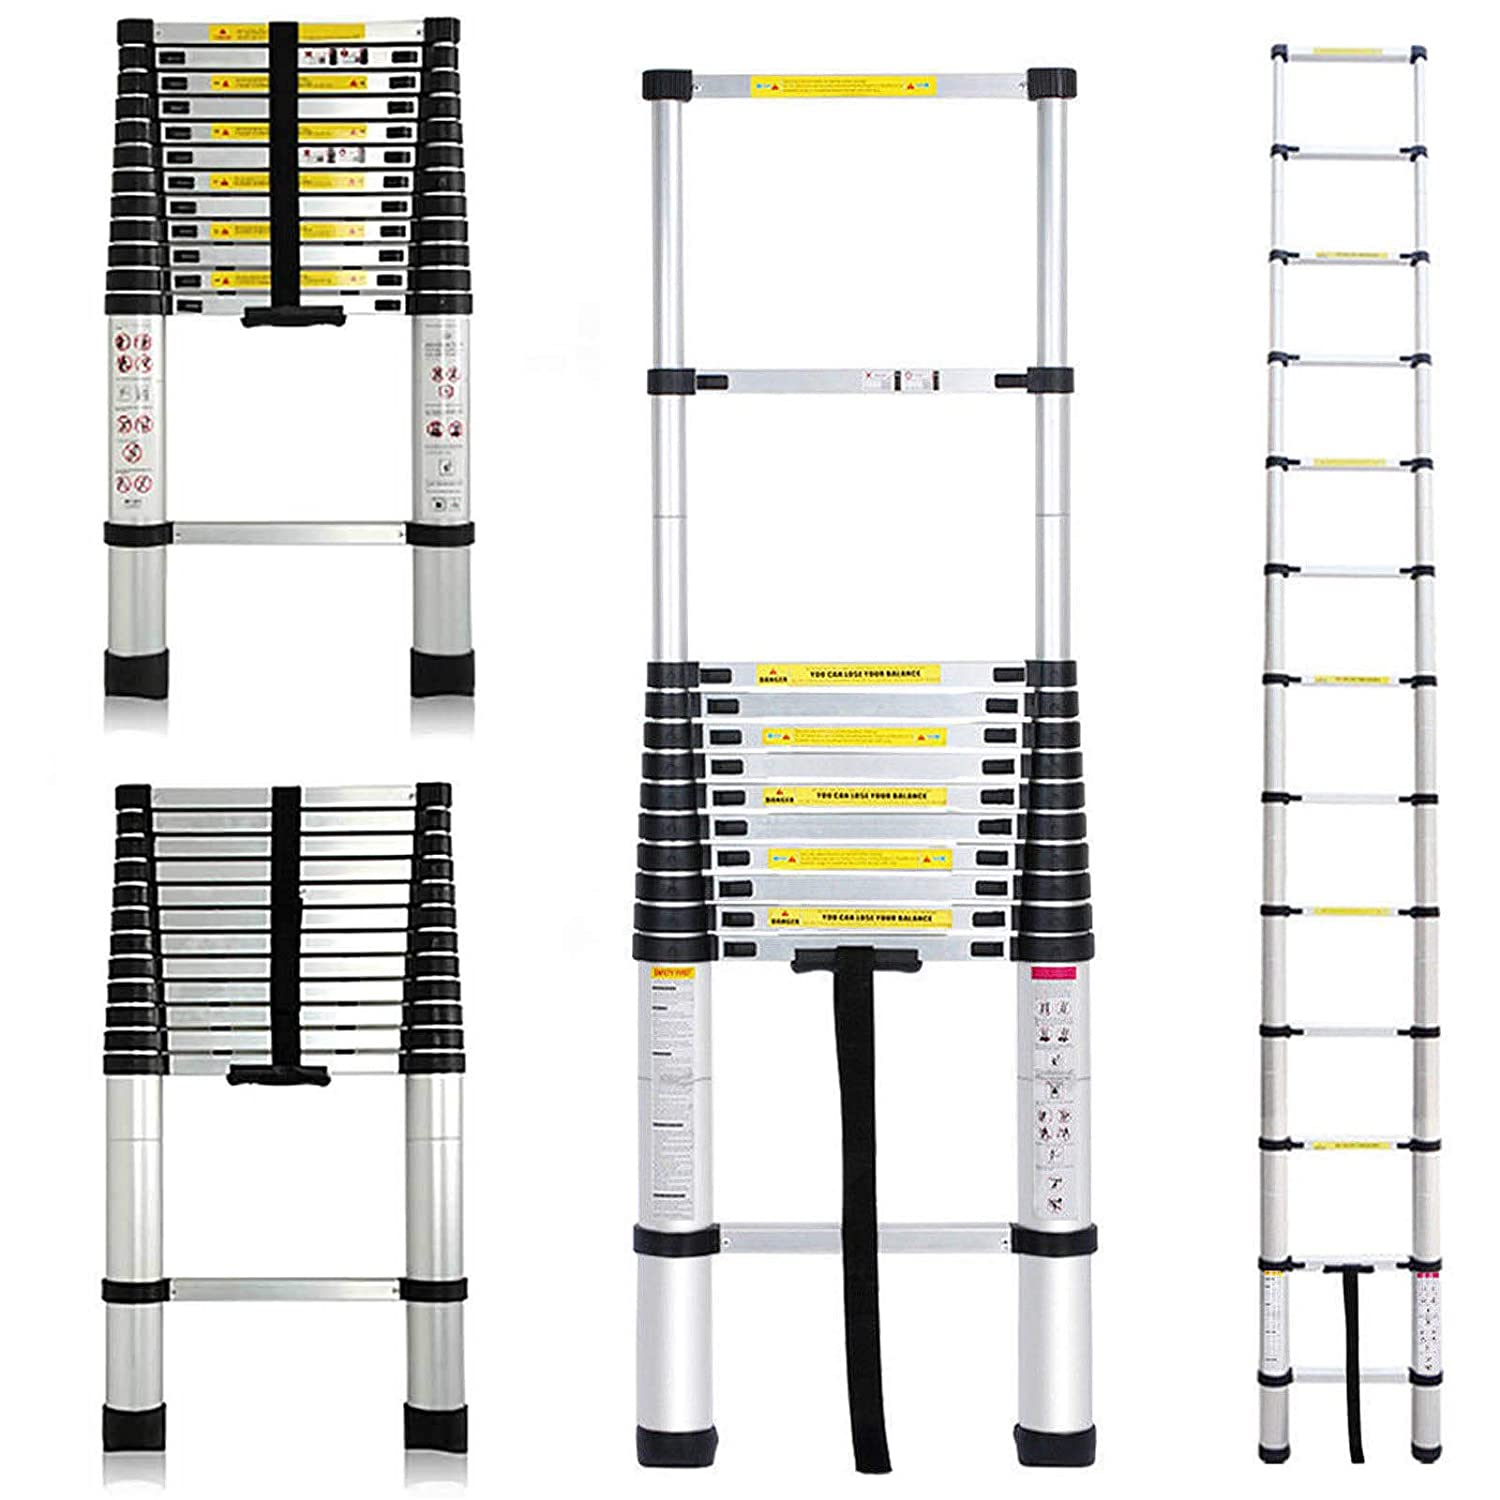 Multi-Function Telescopic Ladder 4.7M Aluminum Alloy Folding Portable Ladder with 1 Tool Tray 150KG Load Capacity for Home Office Indoor Outdoor Bowose